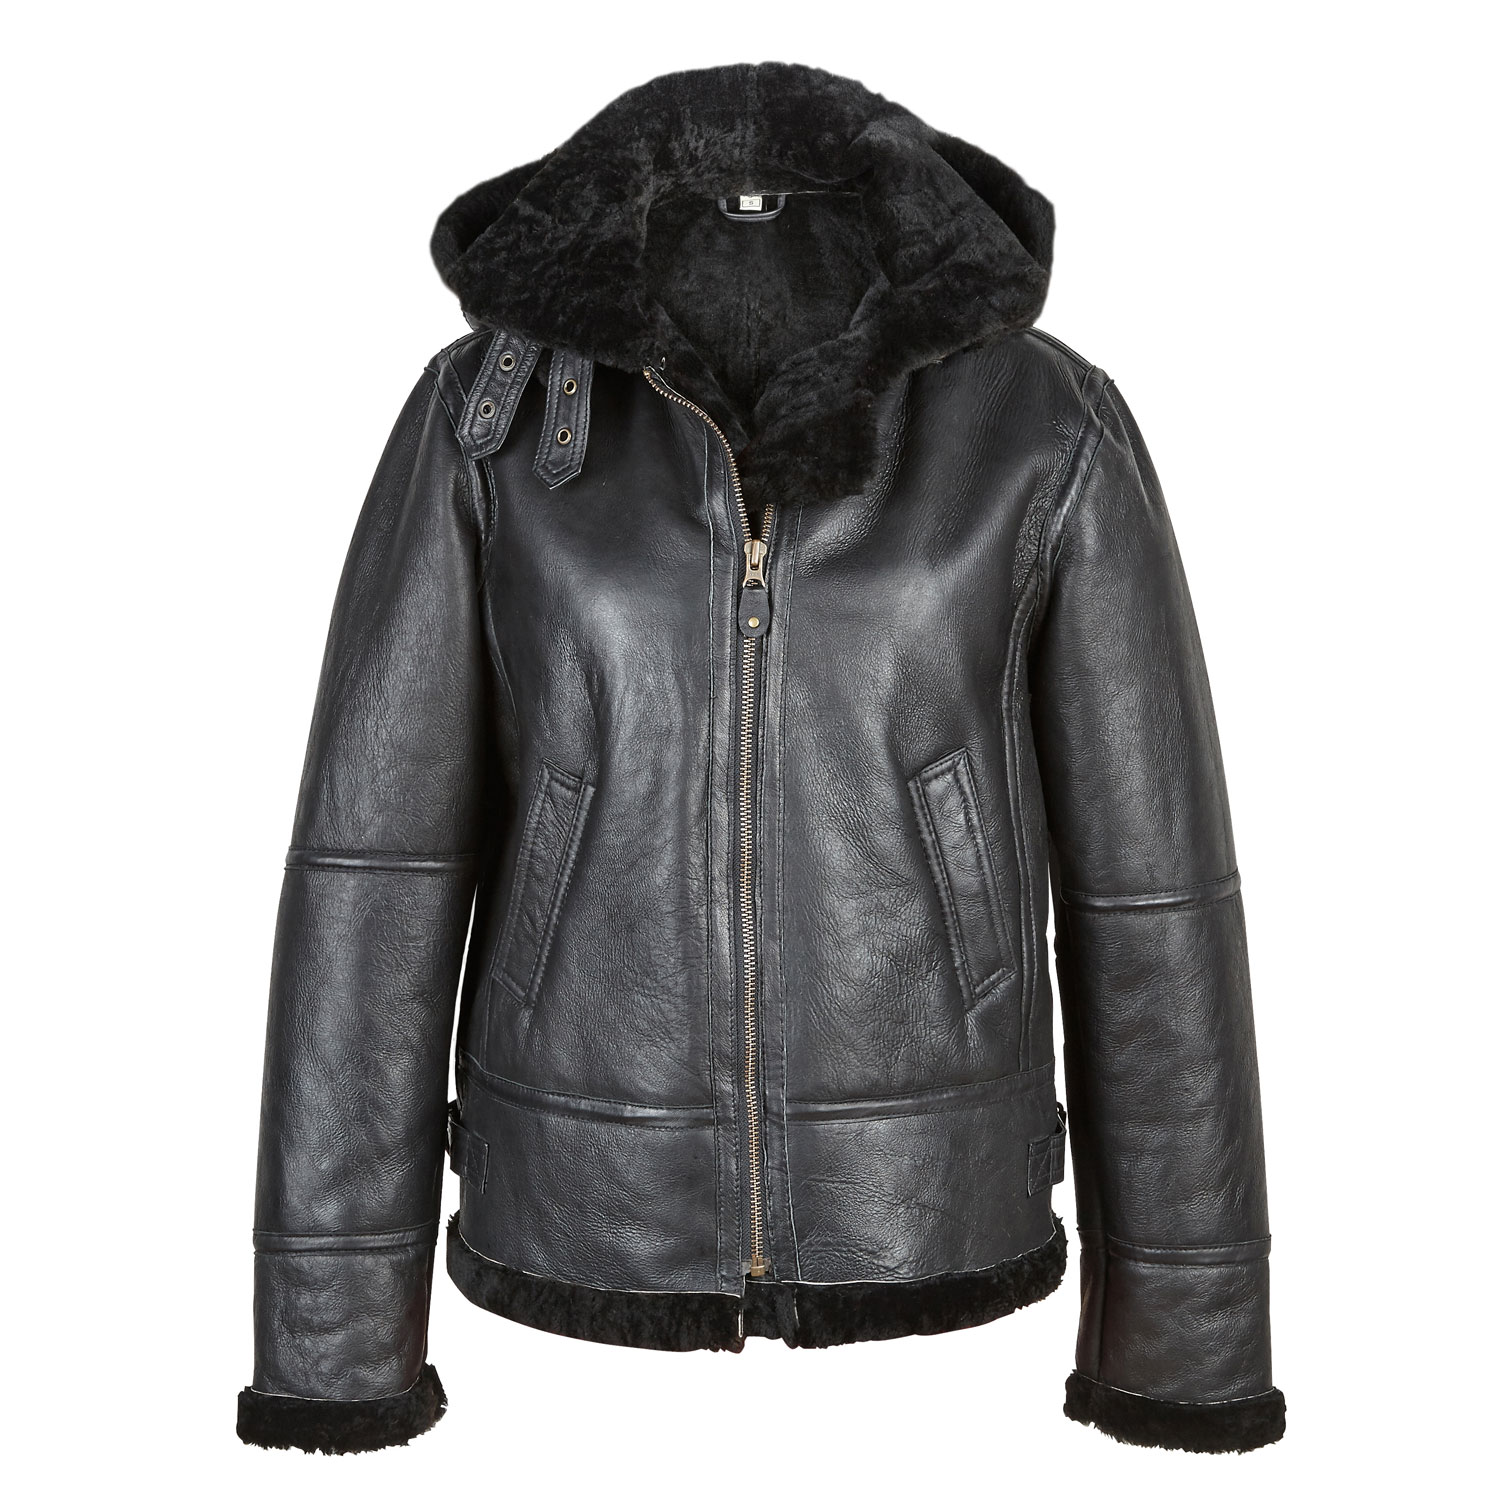 Womens Hooded Leather Jacket in off